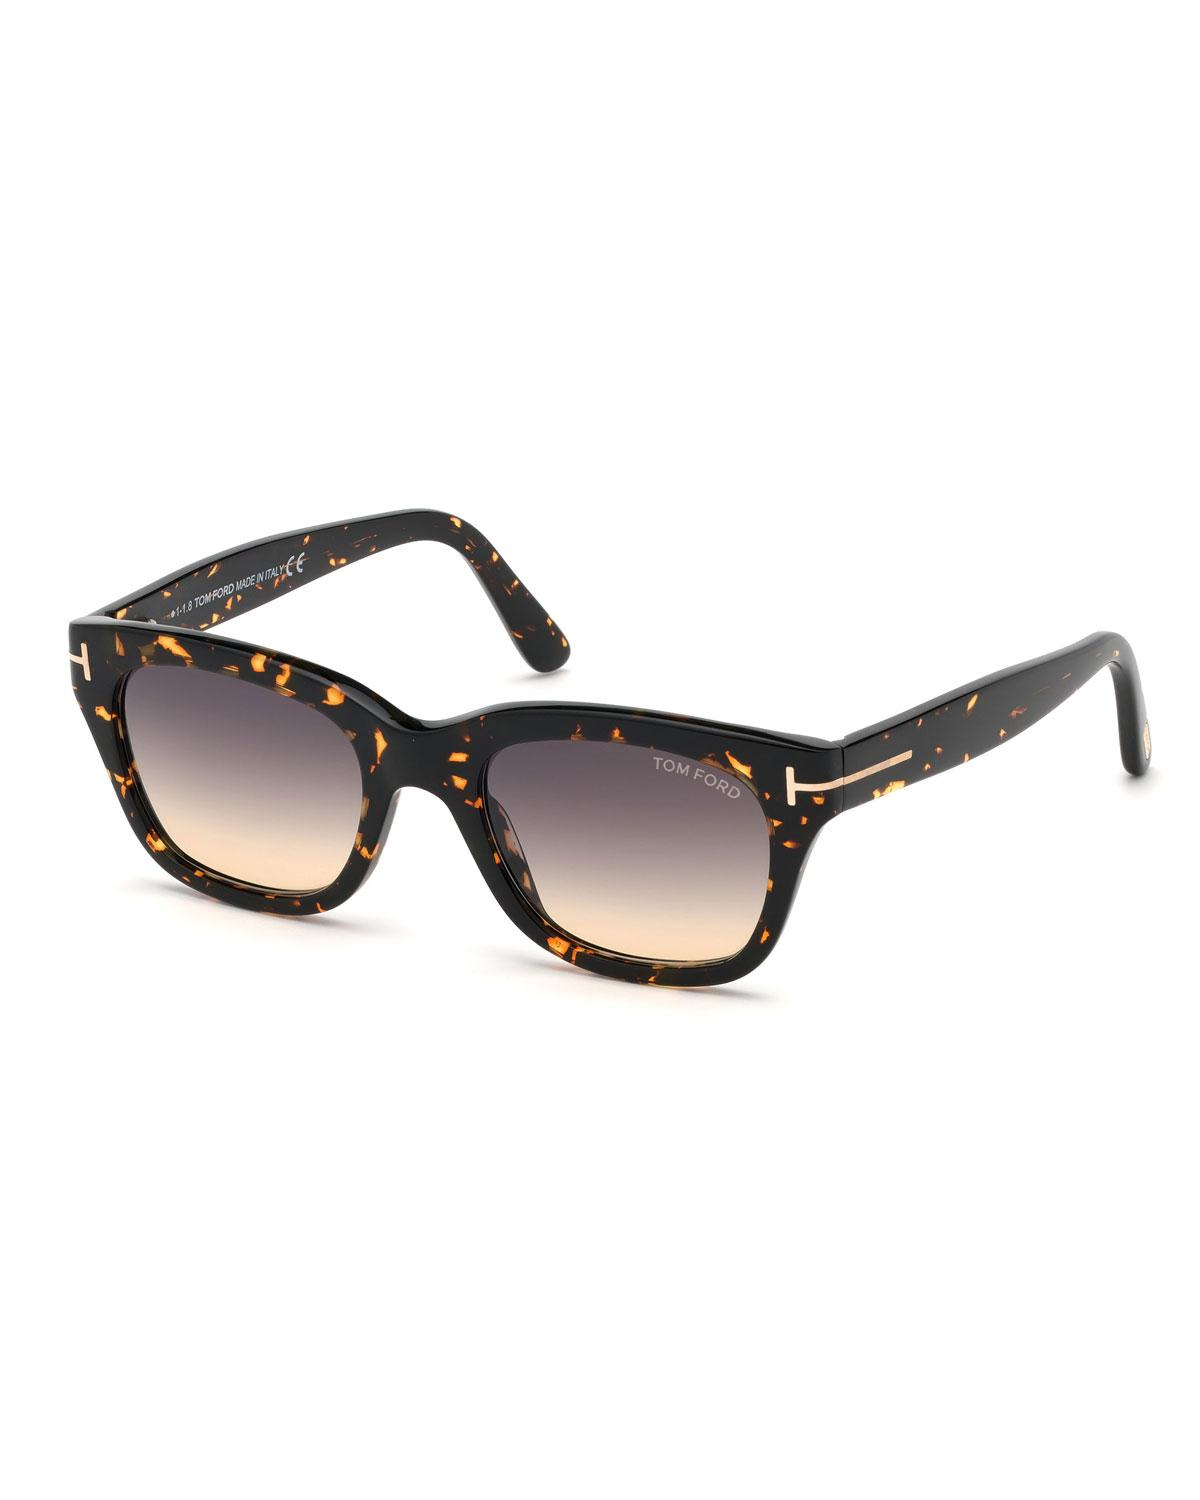 19f04f5cc04 Tom Ford - Brown Men s Snowdon Square Plastic Gradient Sunglasses - Lyst.  View fullscreen